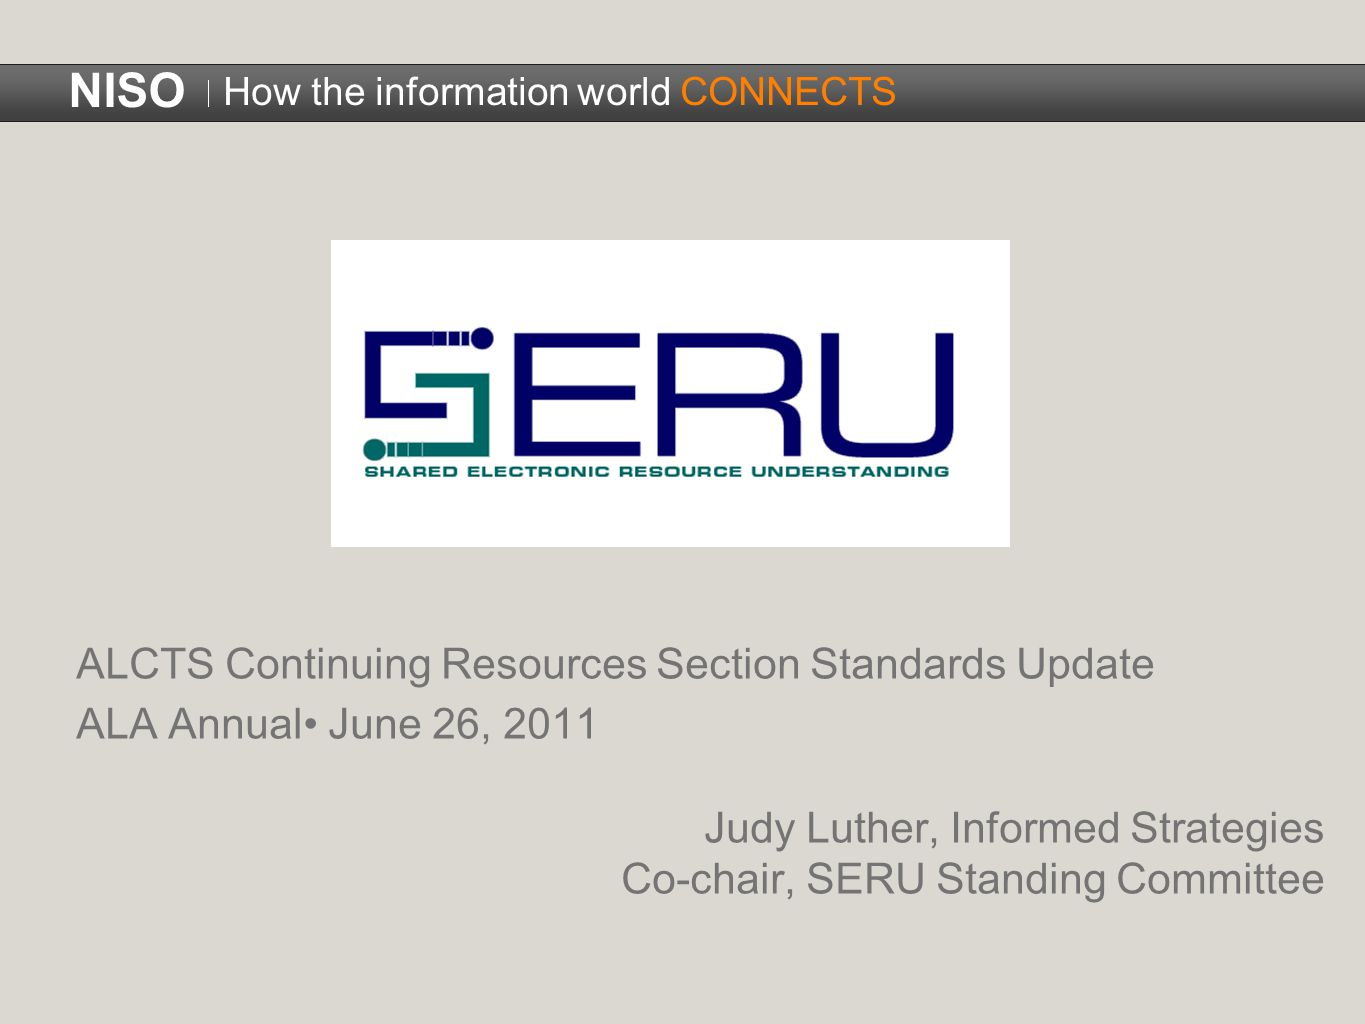 NISO How the information world CONNECTS ALCTS Continuing Resources Section Standards Update ALA Annual June 26, 2011 Judy Luther, Informed Strategies Co-chair, SERU Standing Committee